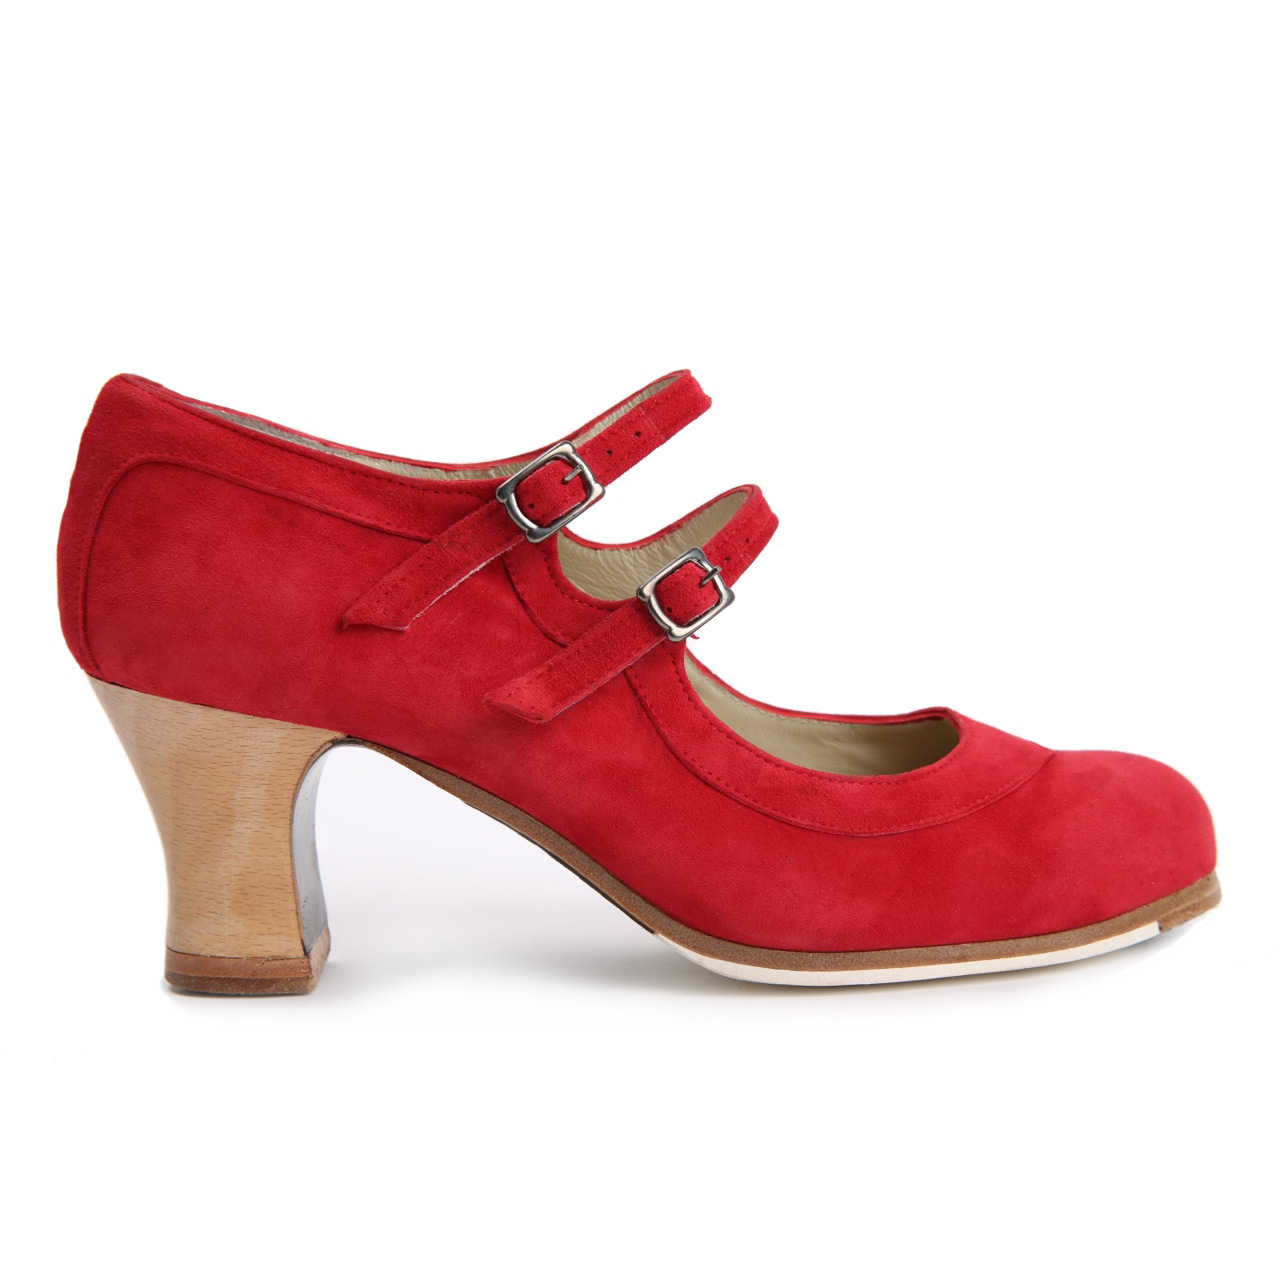 Flamenco dance Shoe Dos Correas Suède Red